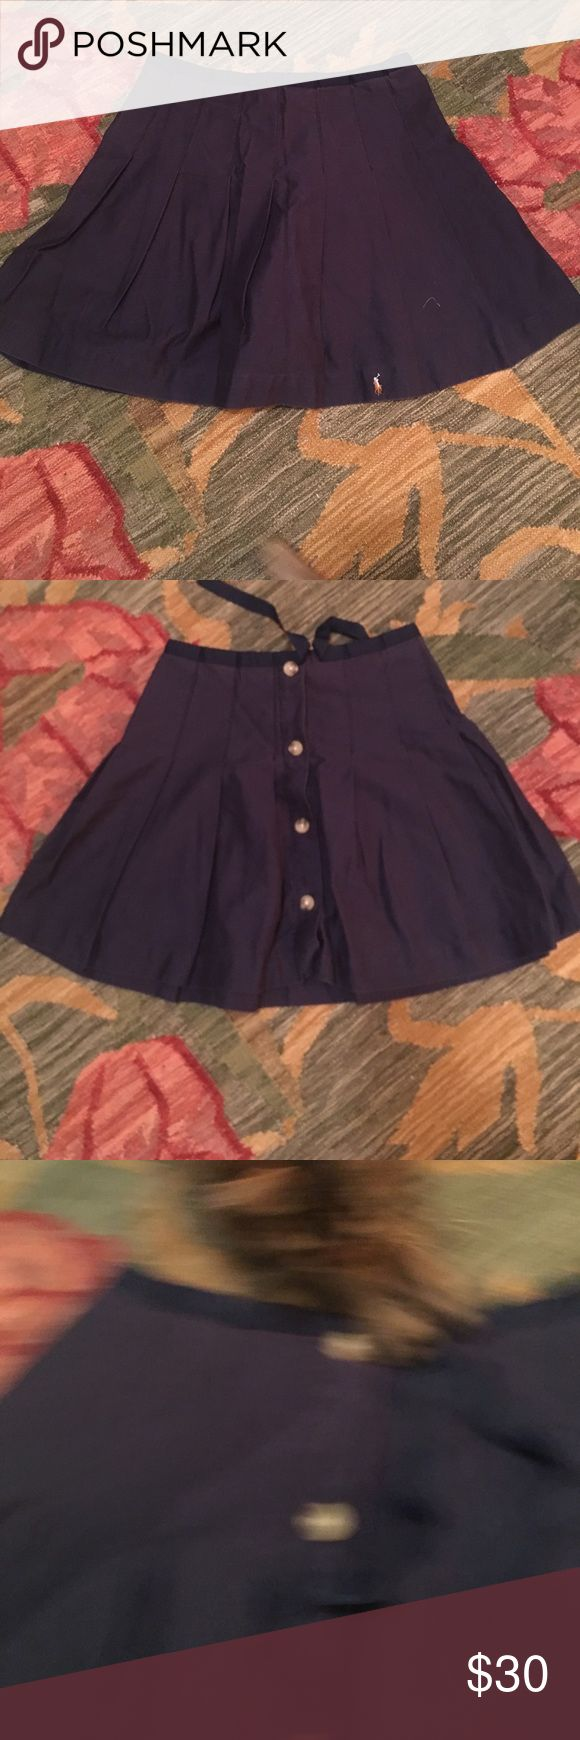 Ralph Lauren navy pleated skirt Cute schoolgirl-esque pleated skirt with buttons and a ribbon tie. Gently worn, no damage, might work for a school uniform or just everyday wear. Says size 14 but looks much smaller, maybe an 8. Ralph Lauren Skirts Mini